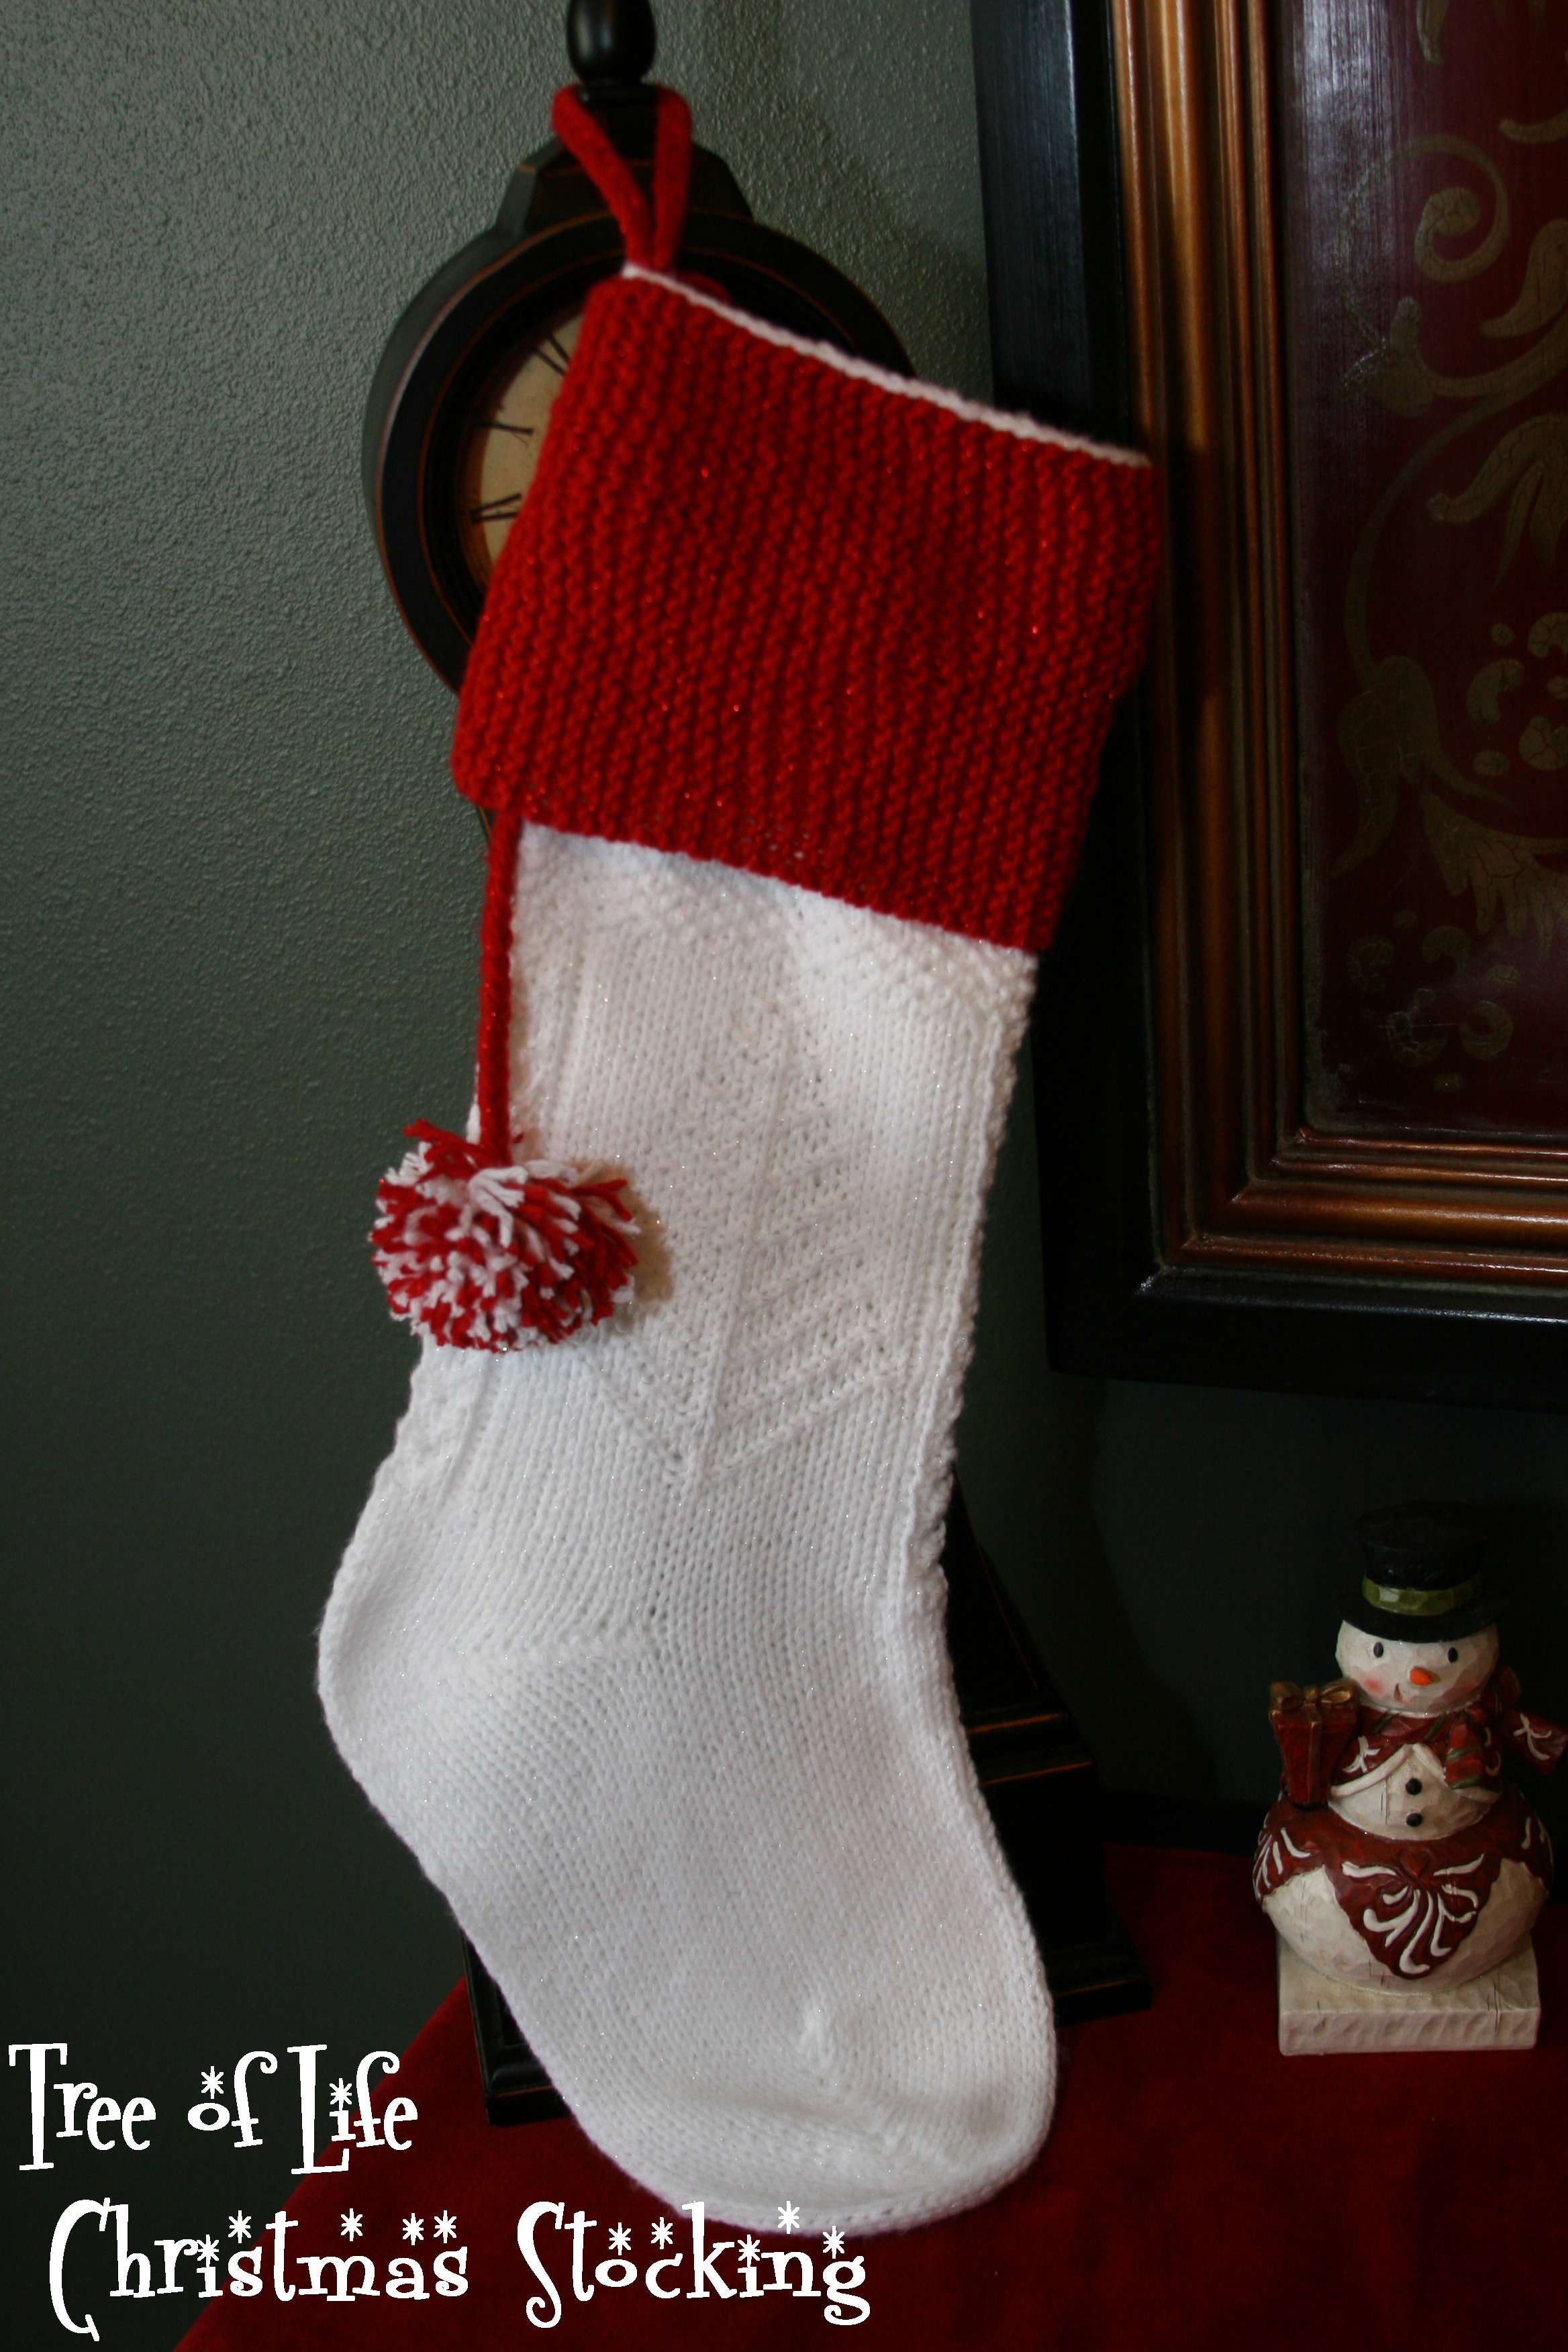 Knit Pattern Christmas Stocking : Happy Holidays!!! Christmas Stocking Pattern   Knitting Board Blog